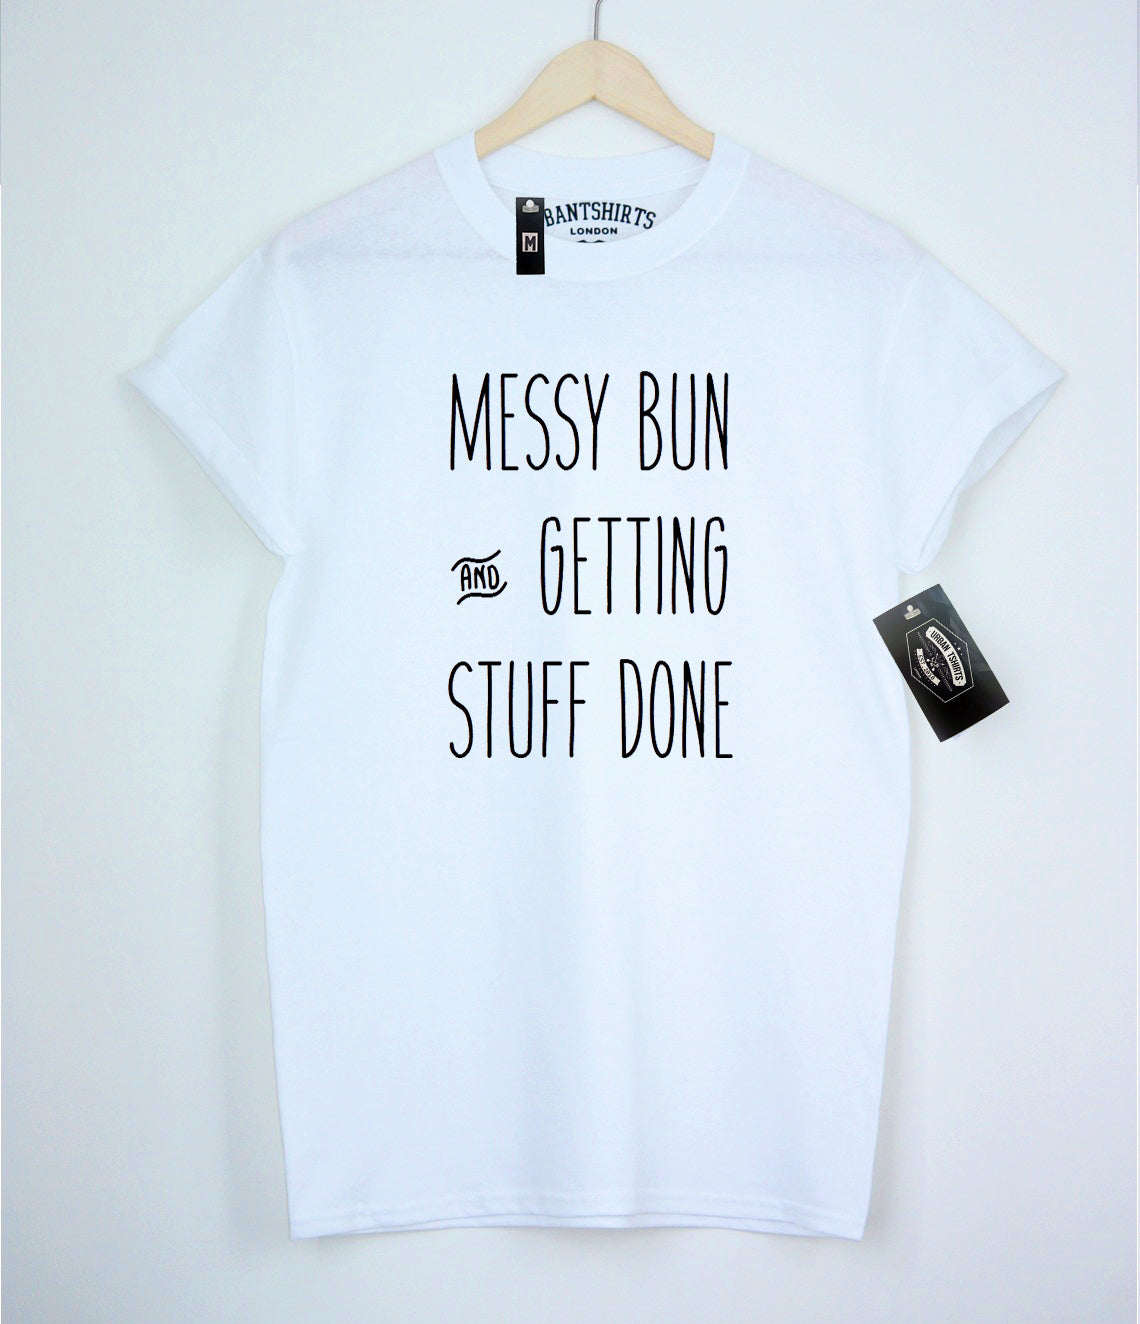 Messy bun and getting stuff done T-shirt - Urbantshirts.co.uk